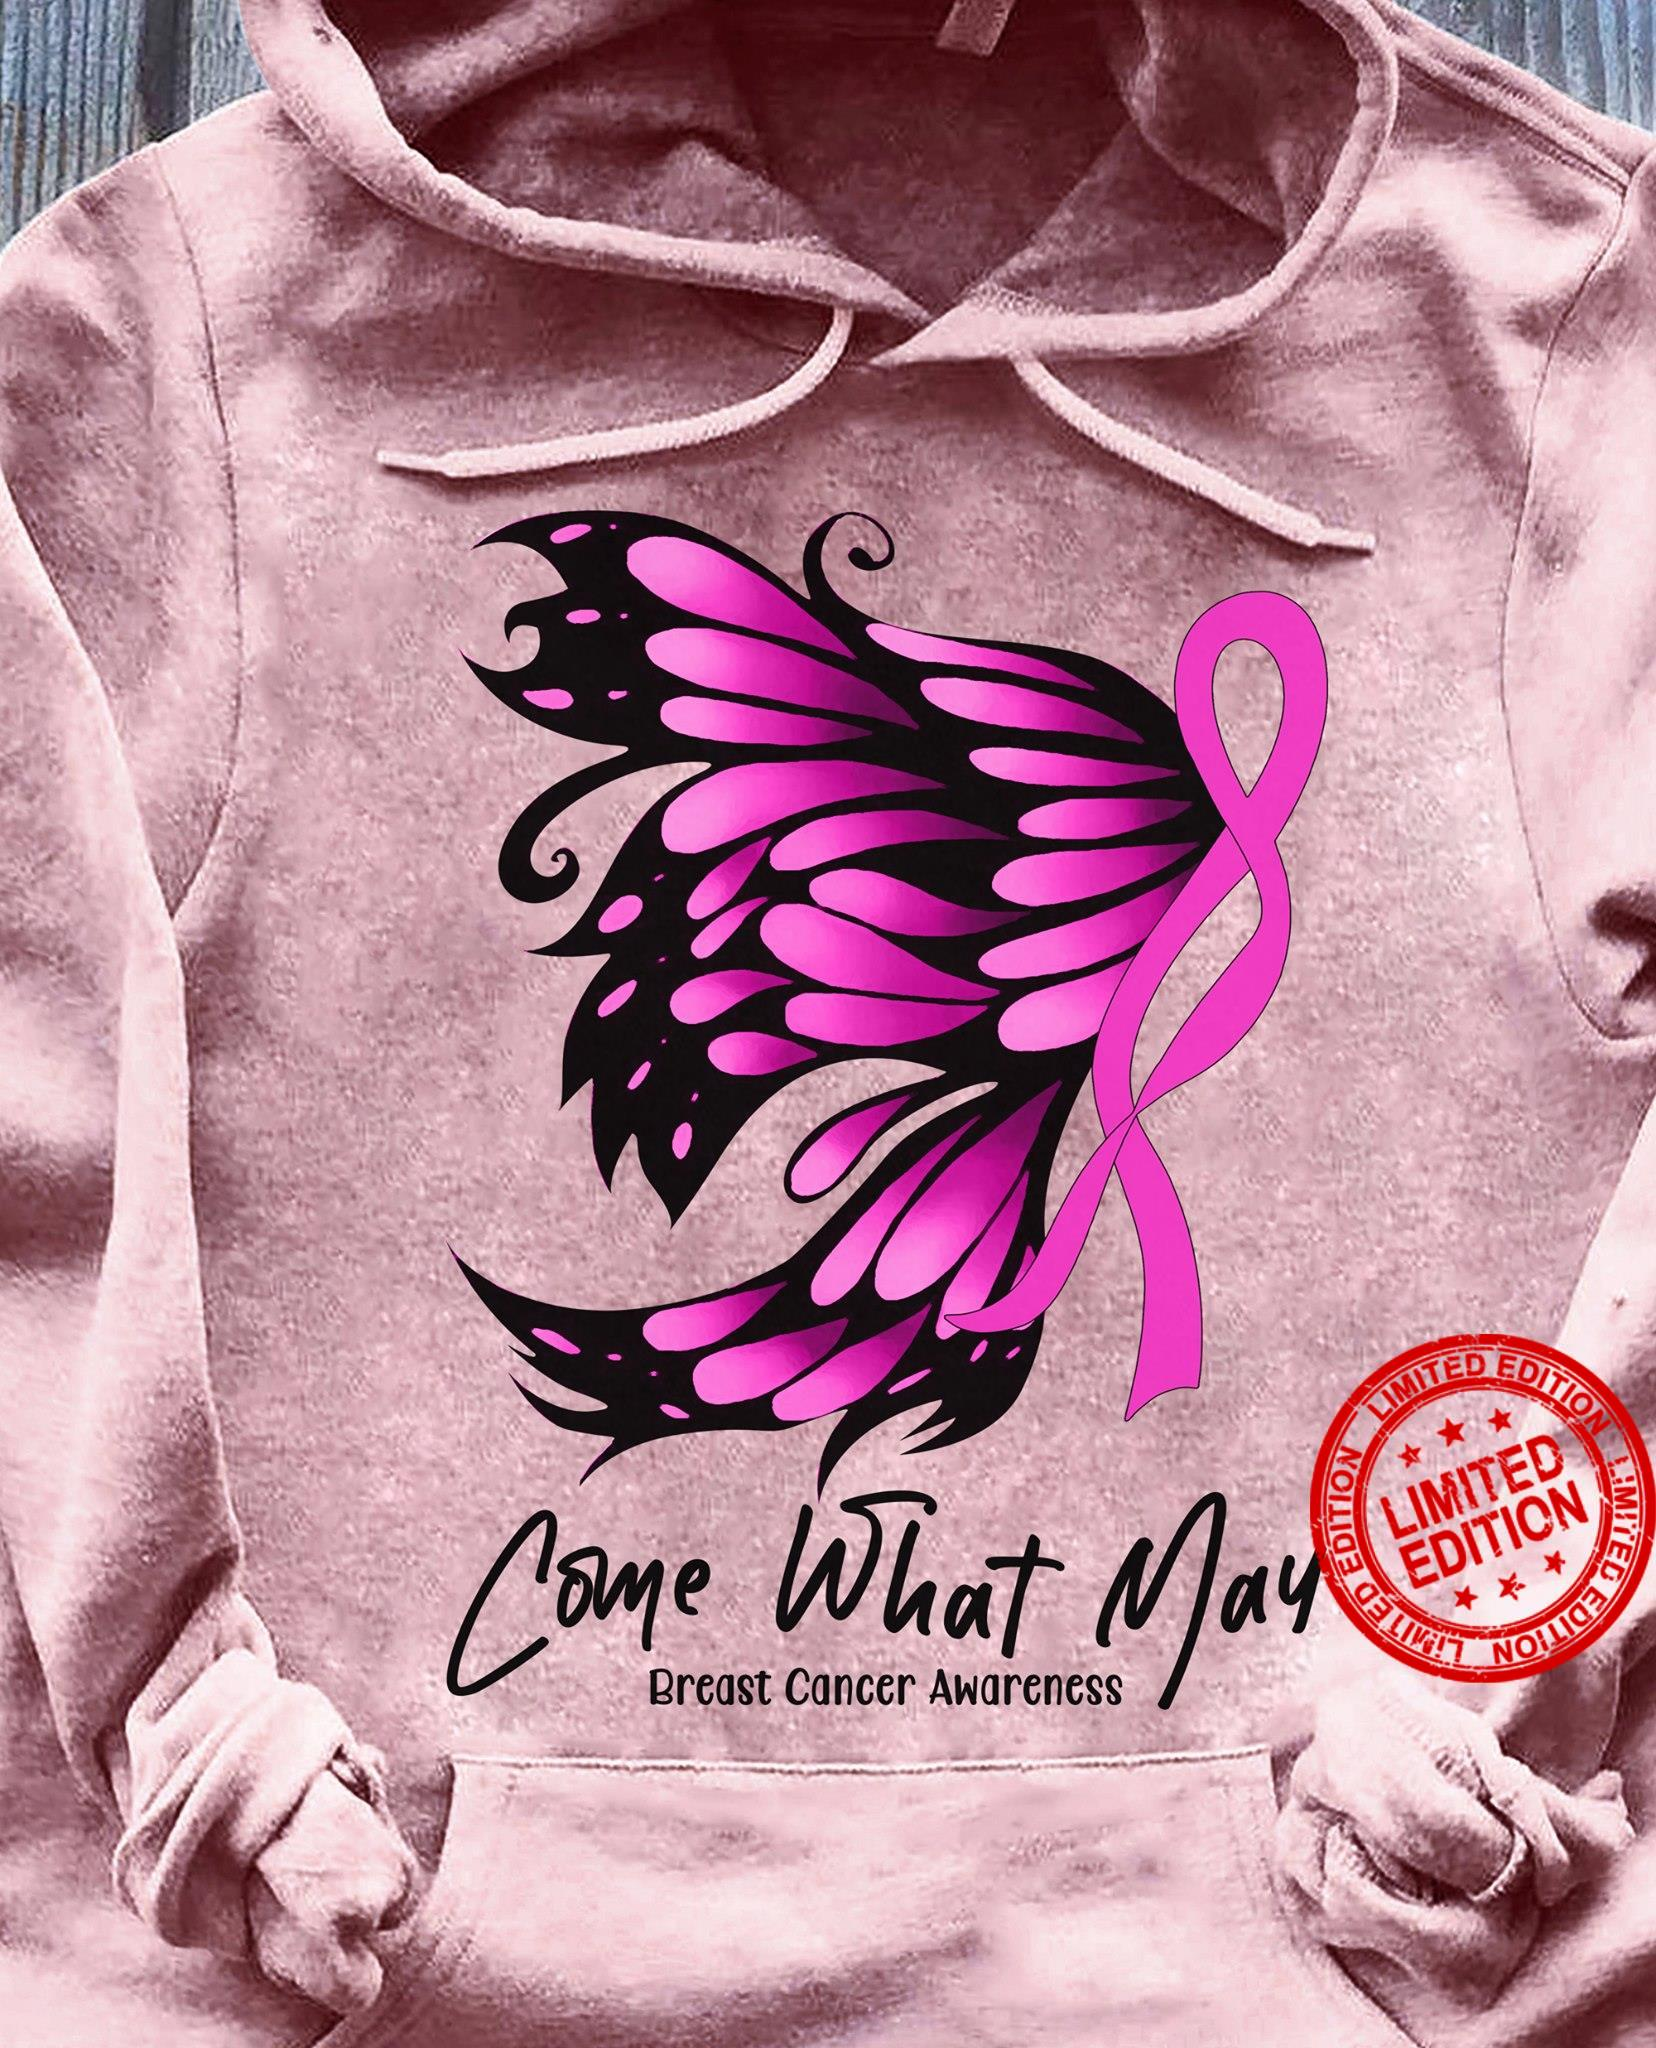 Come What May Breast Cancer Awareness Shirt